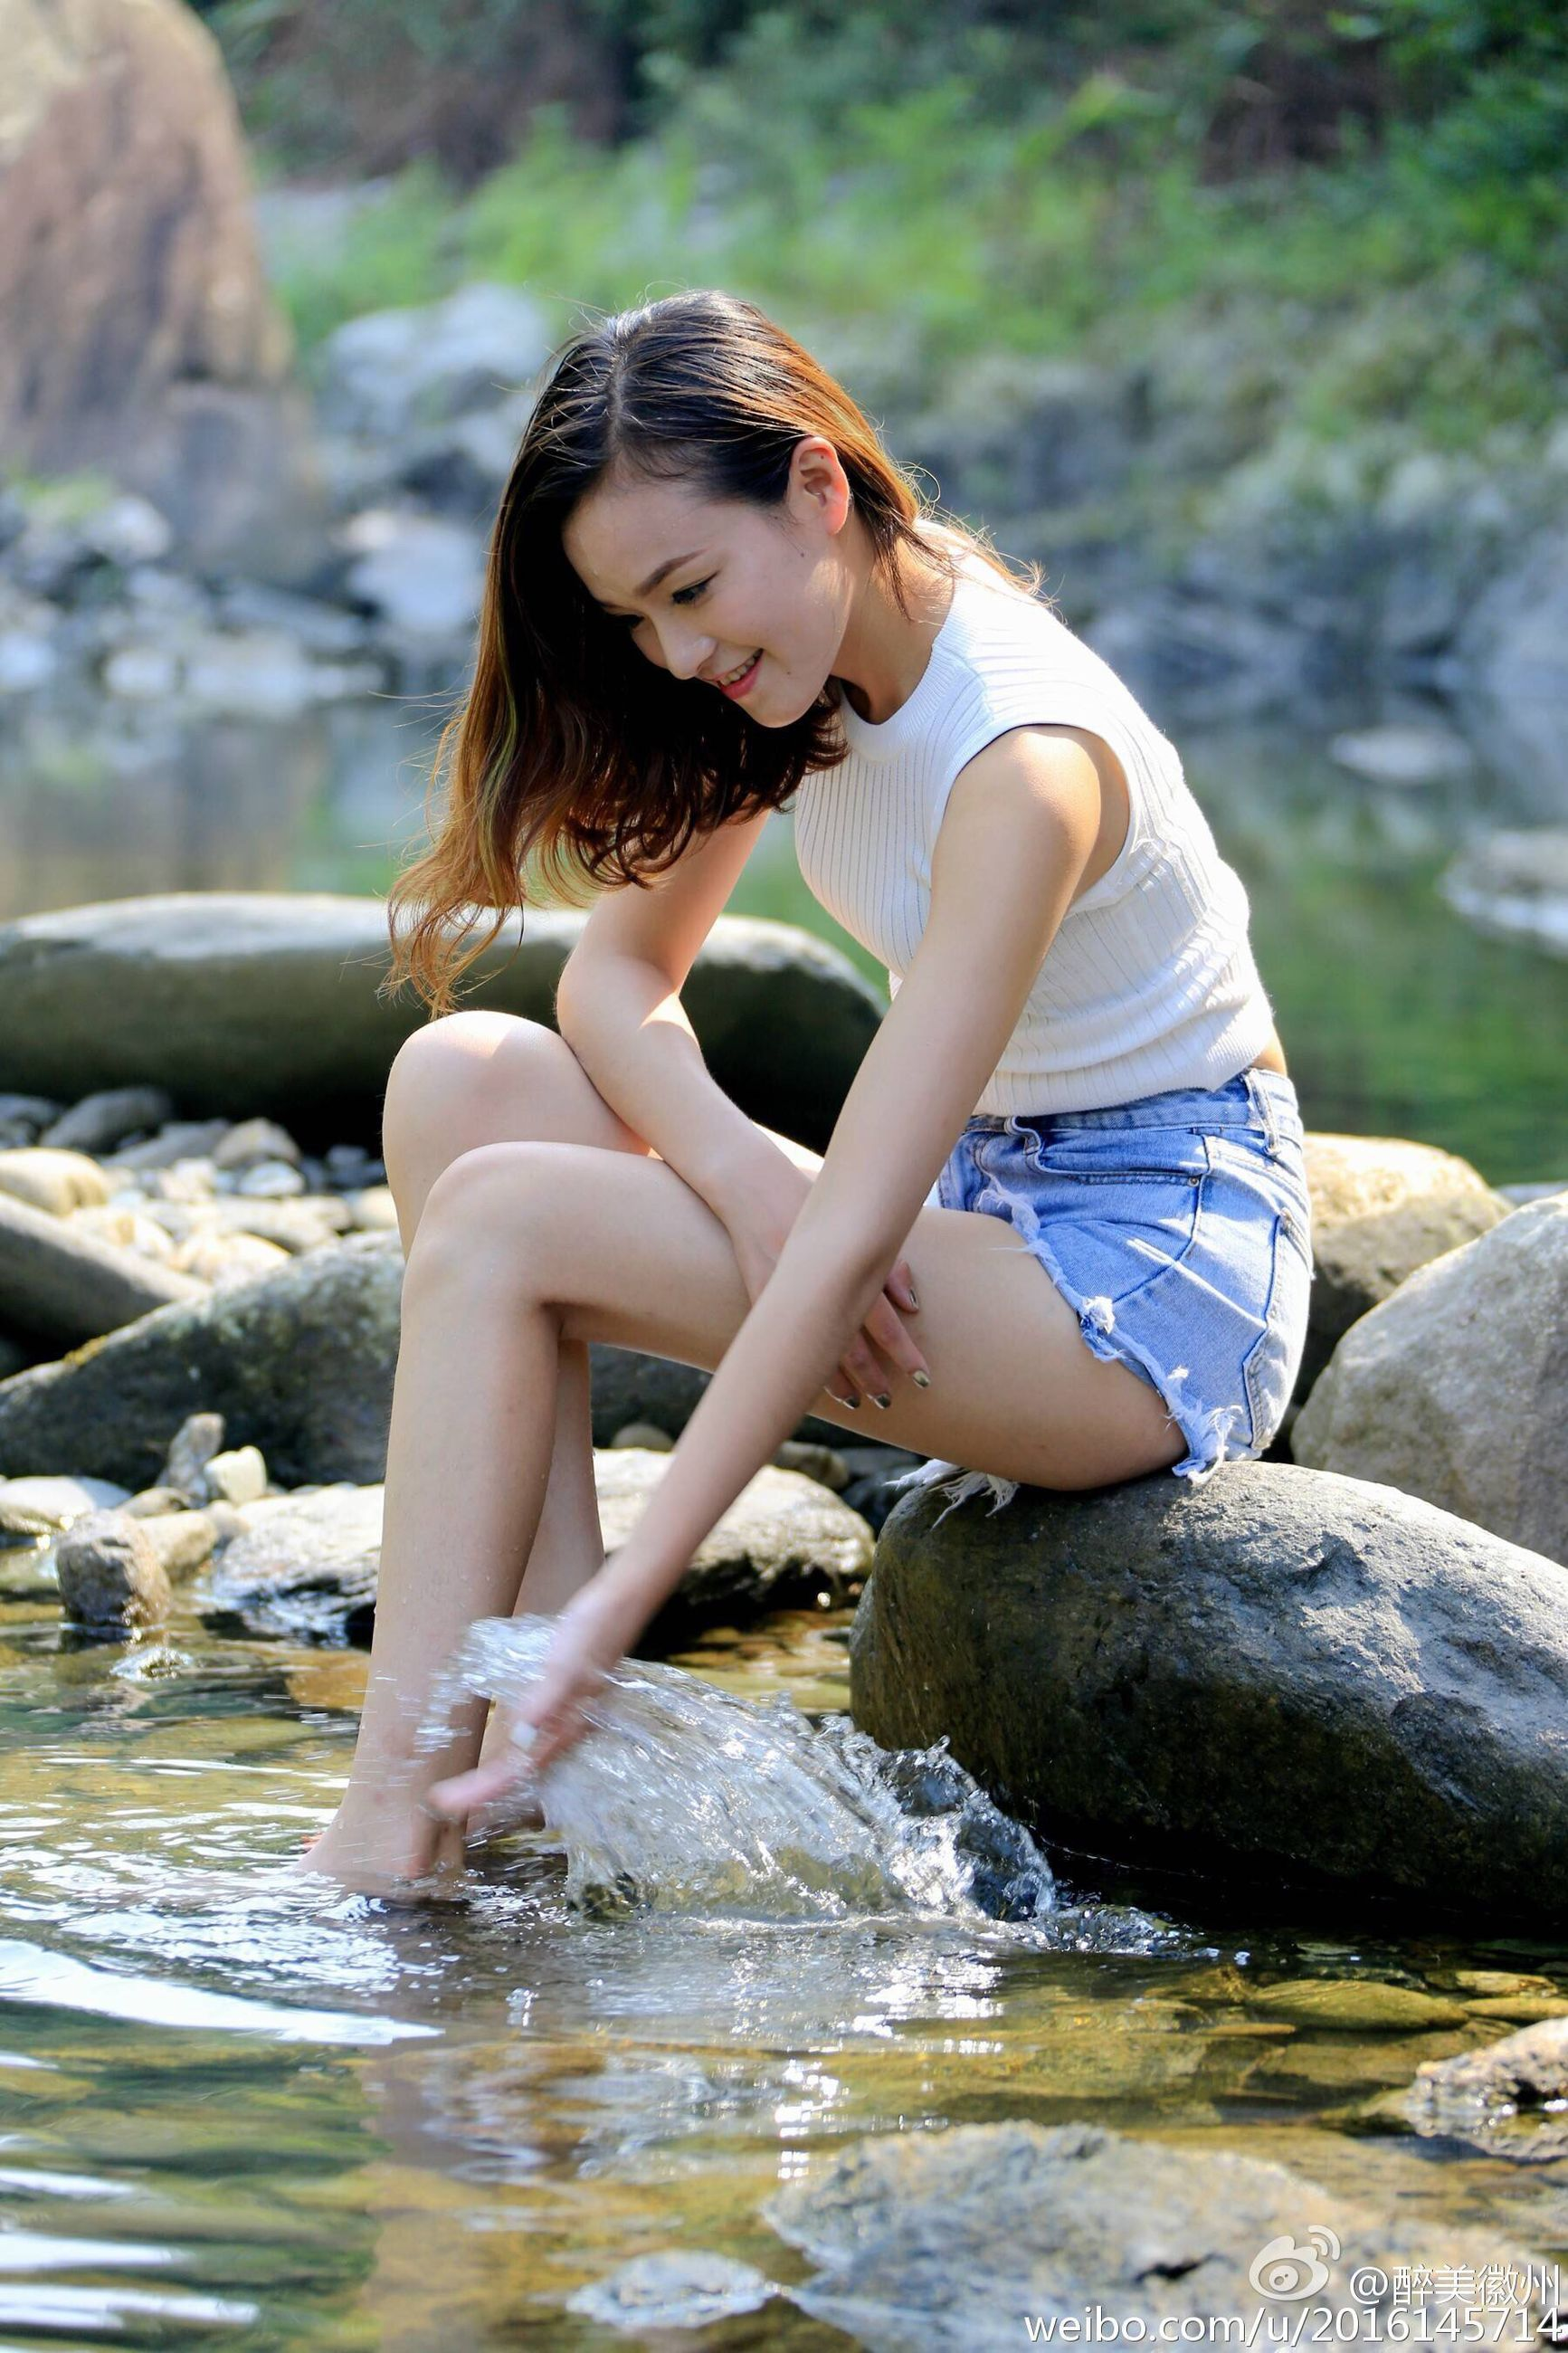 water, young women, young adult, person, full length, casual clothing, long hair, day, focus on foreground, nature, outdoors, beauty, sea, waterfront